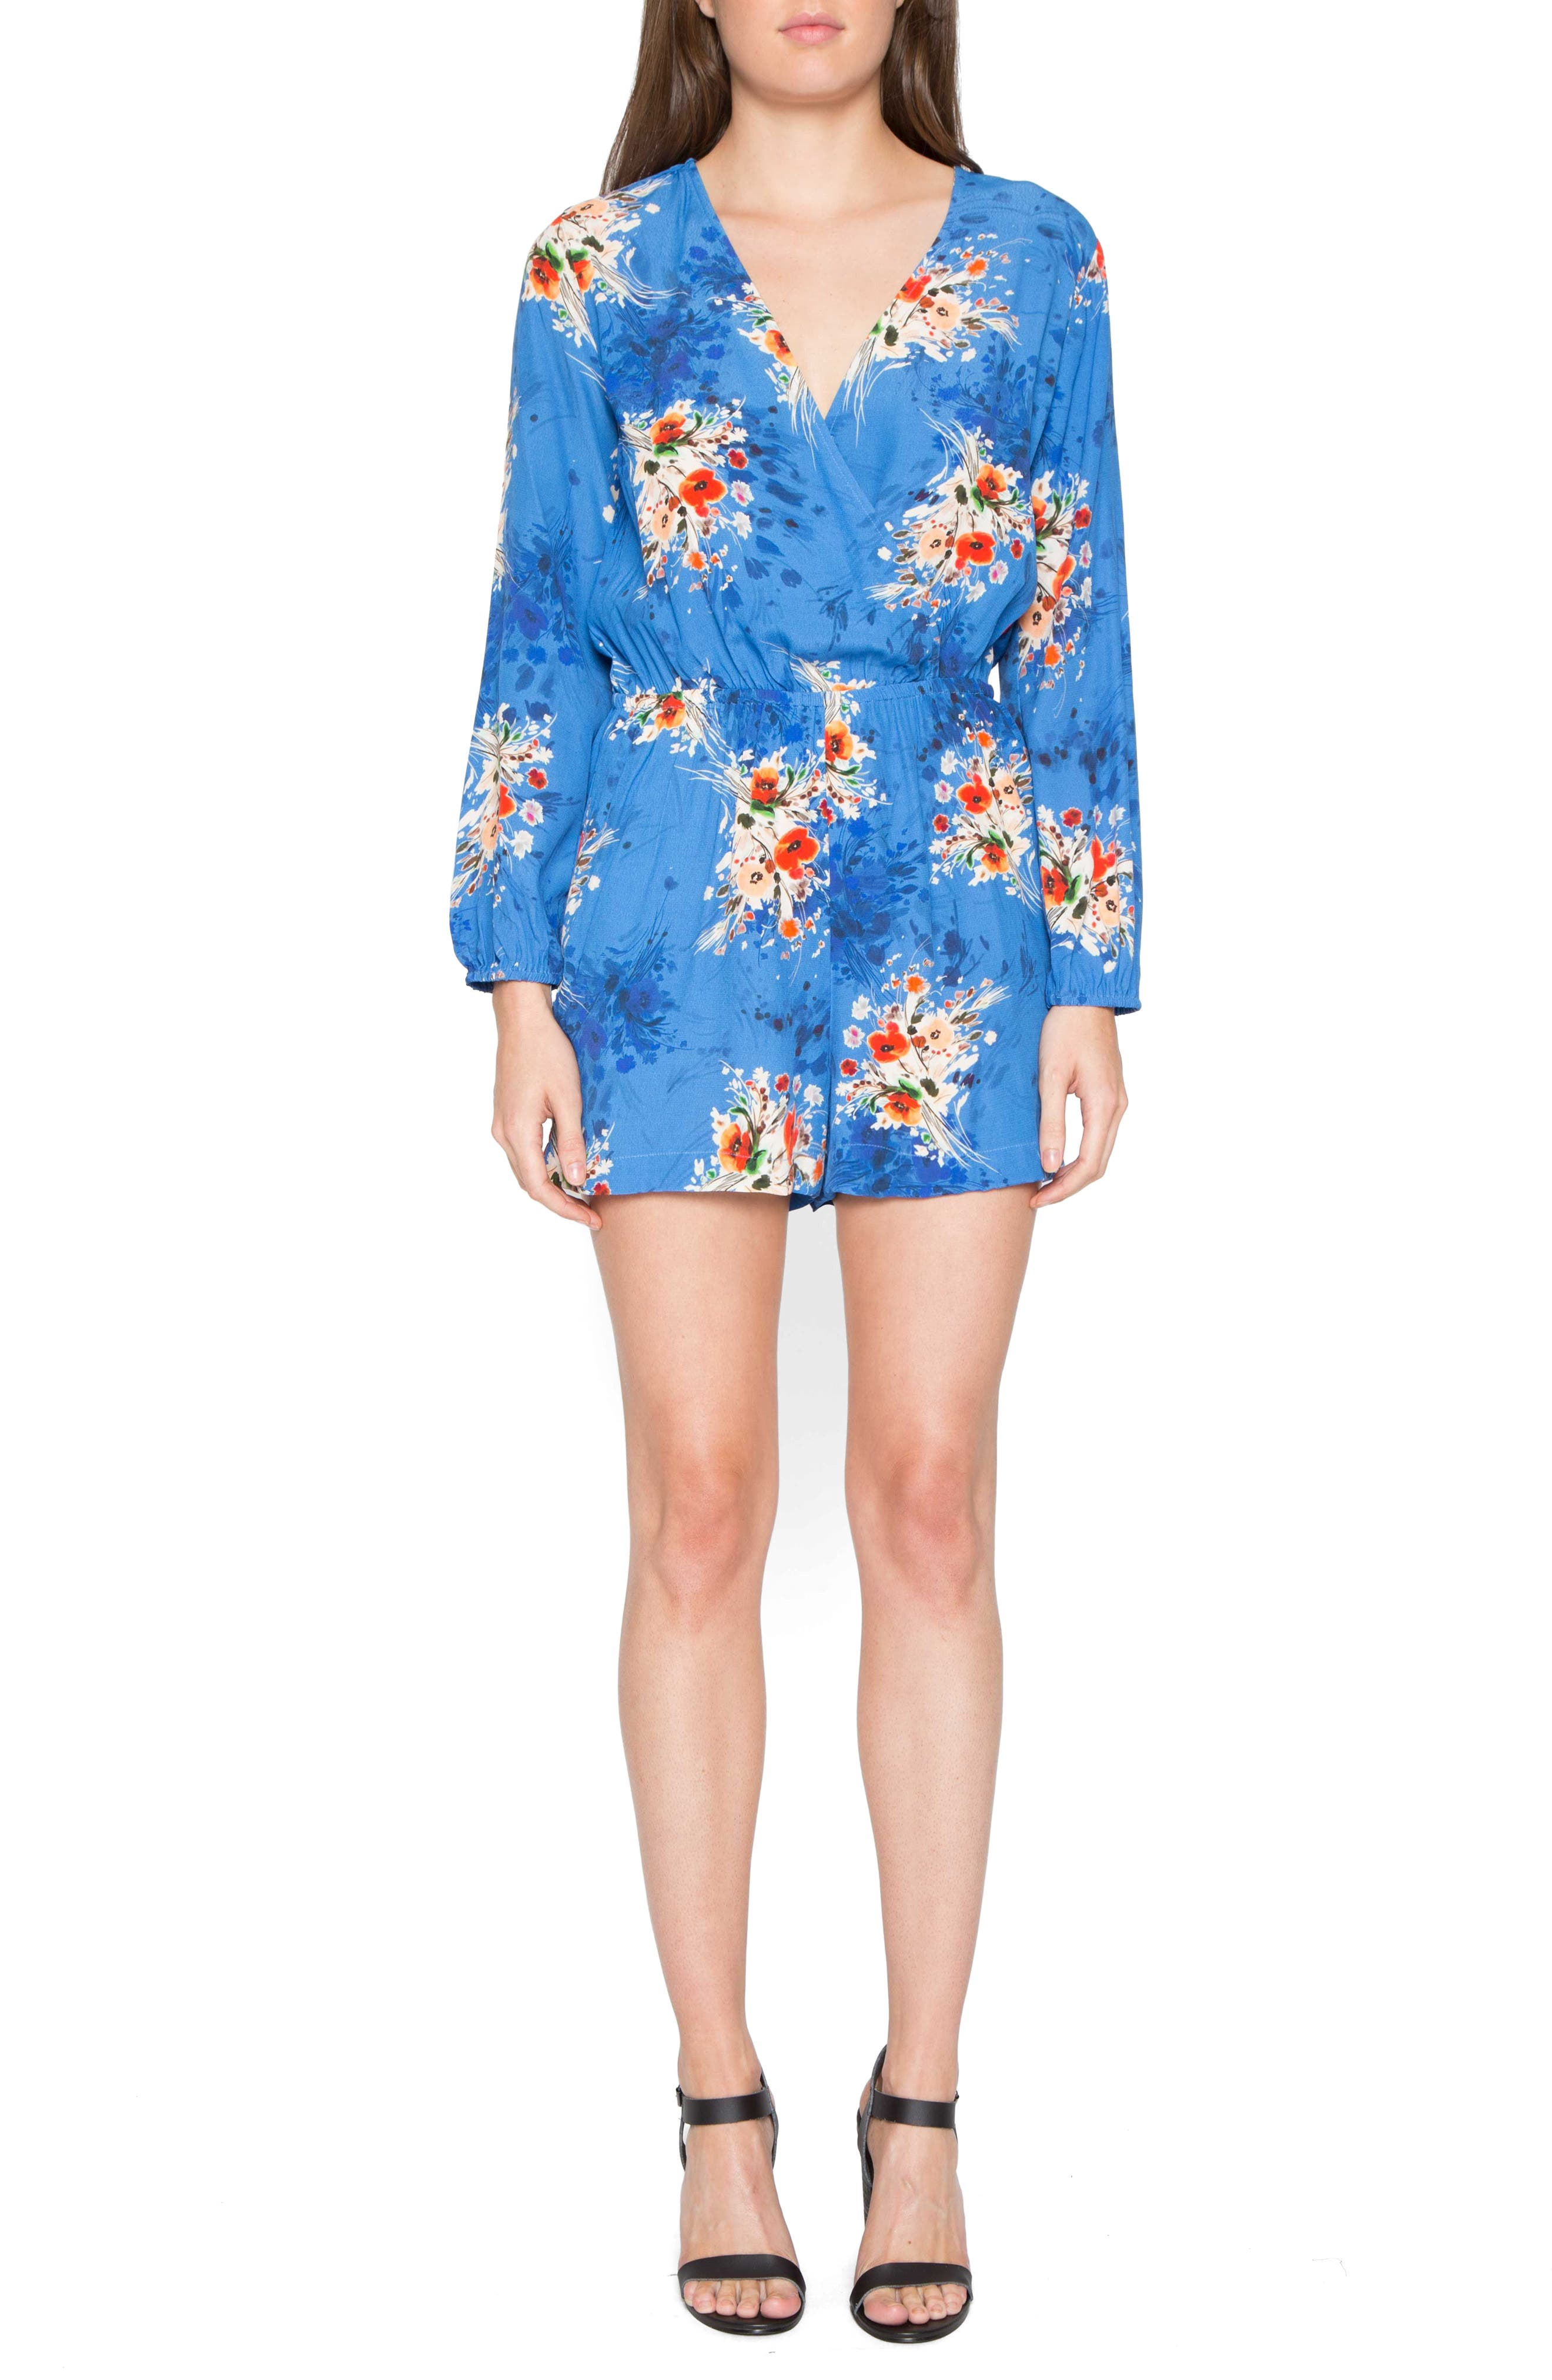 Alternate Image 1 Selected - Willow & Clay Floral Print Romper